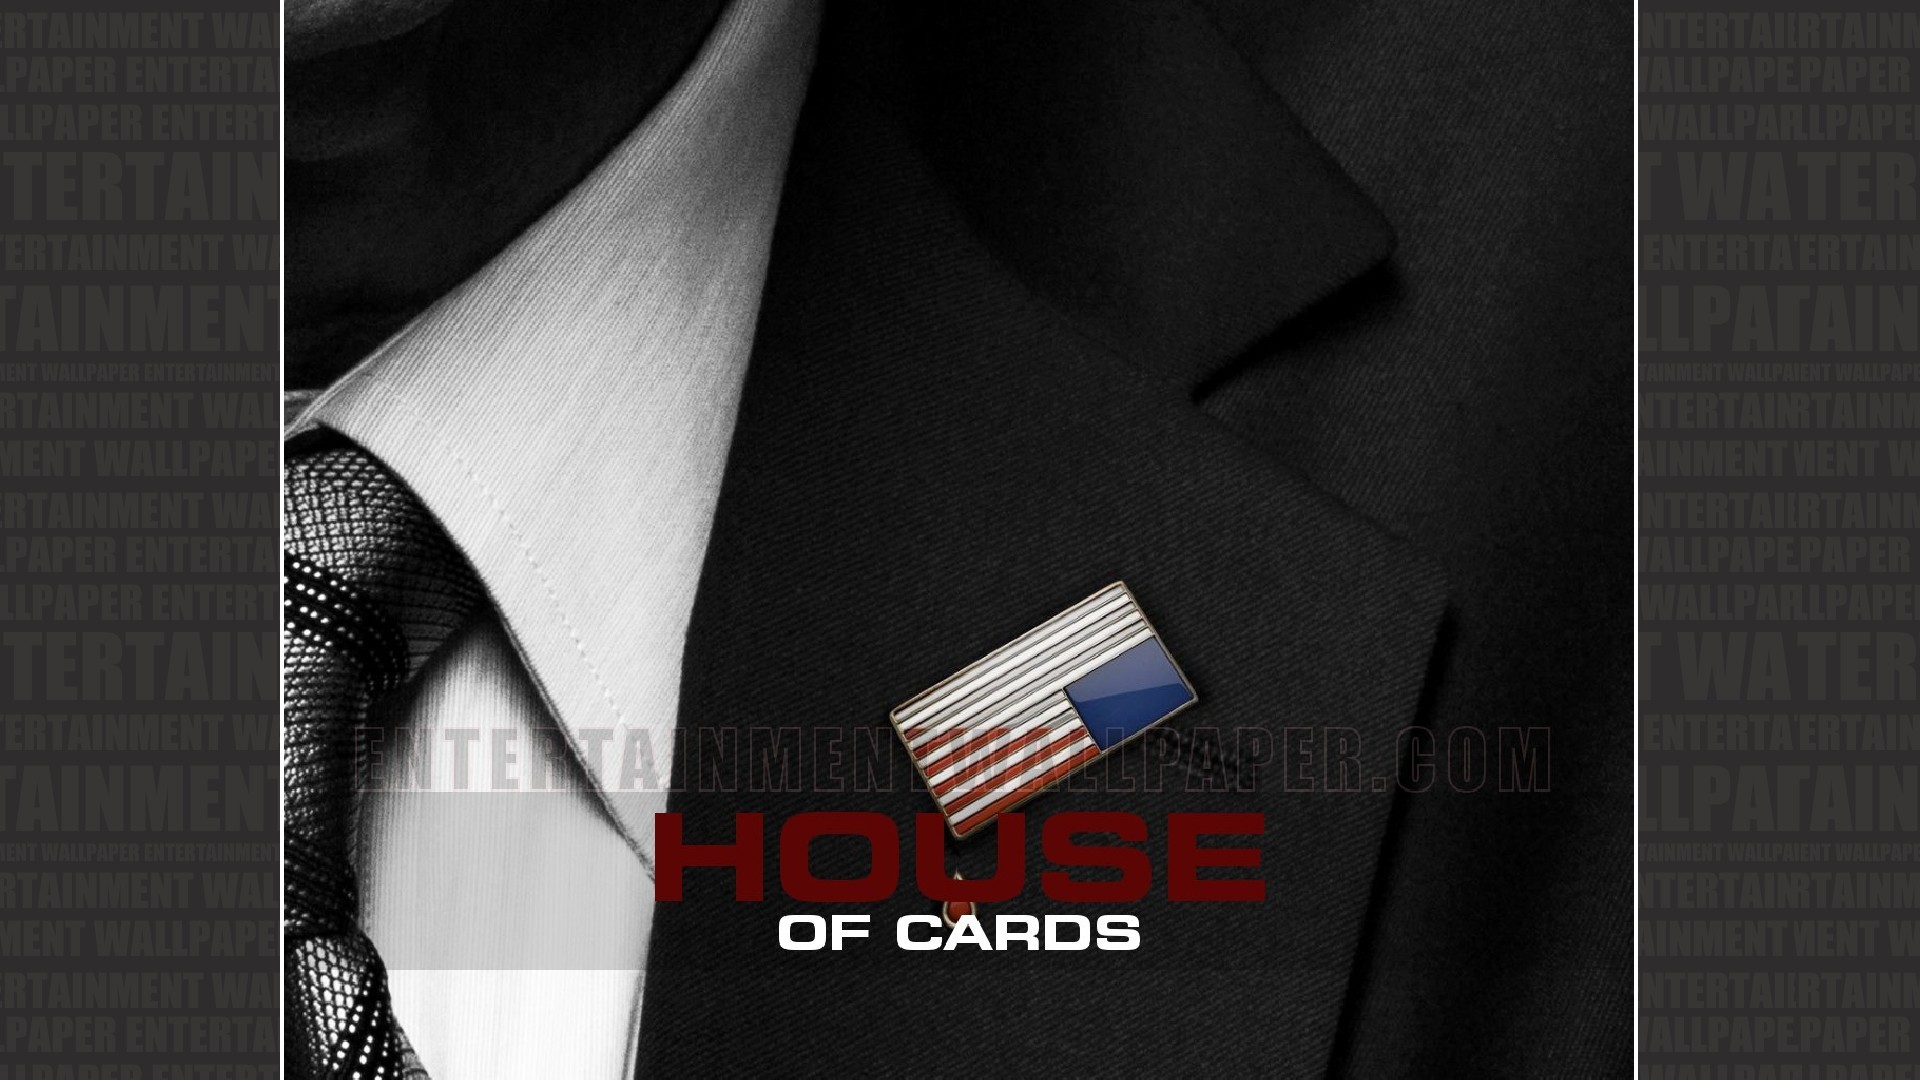 House of Cards Wallpaper – Original size, download now.